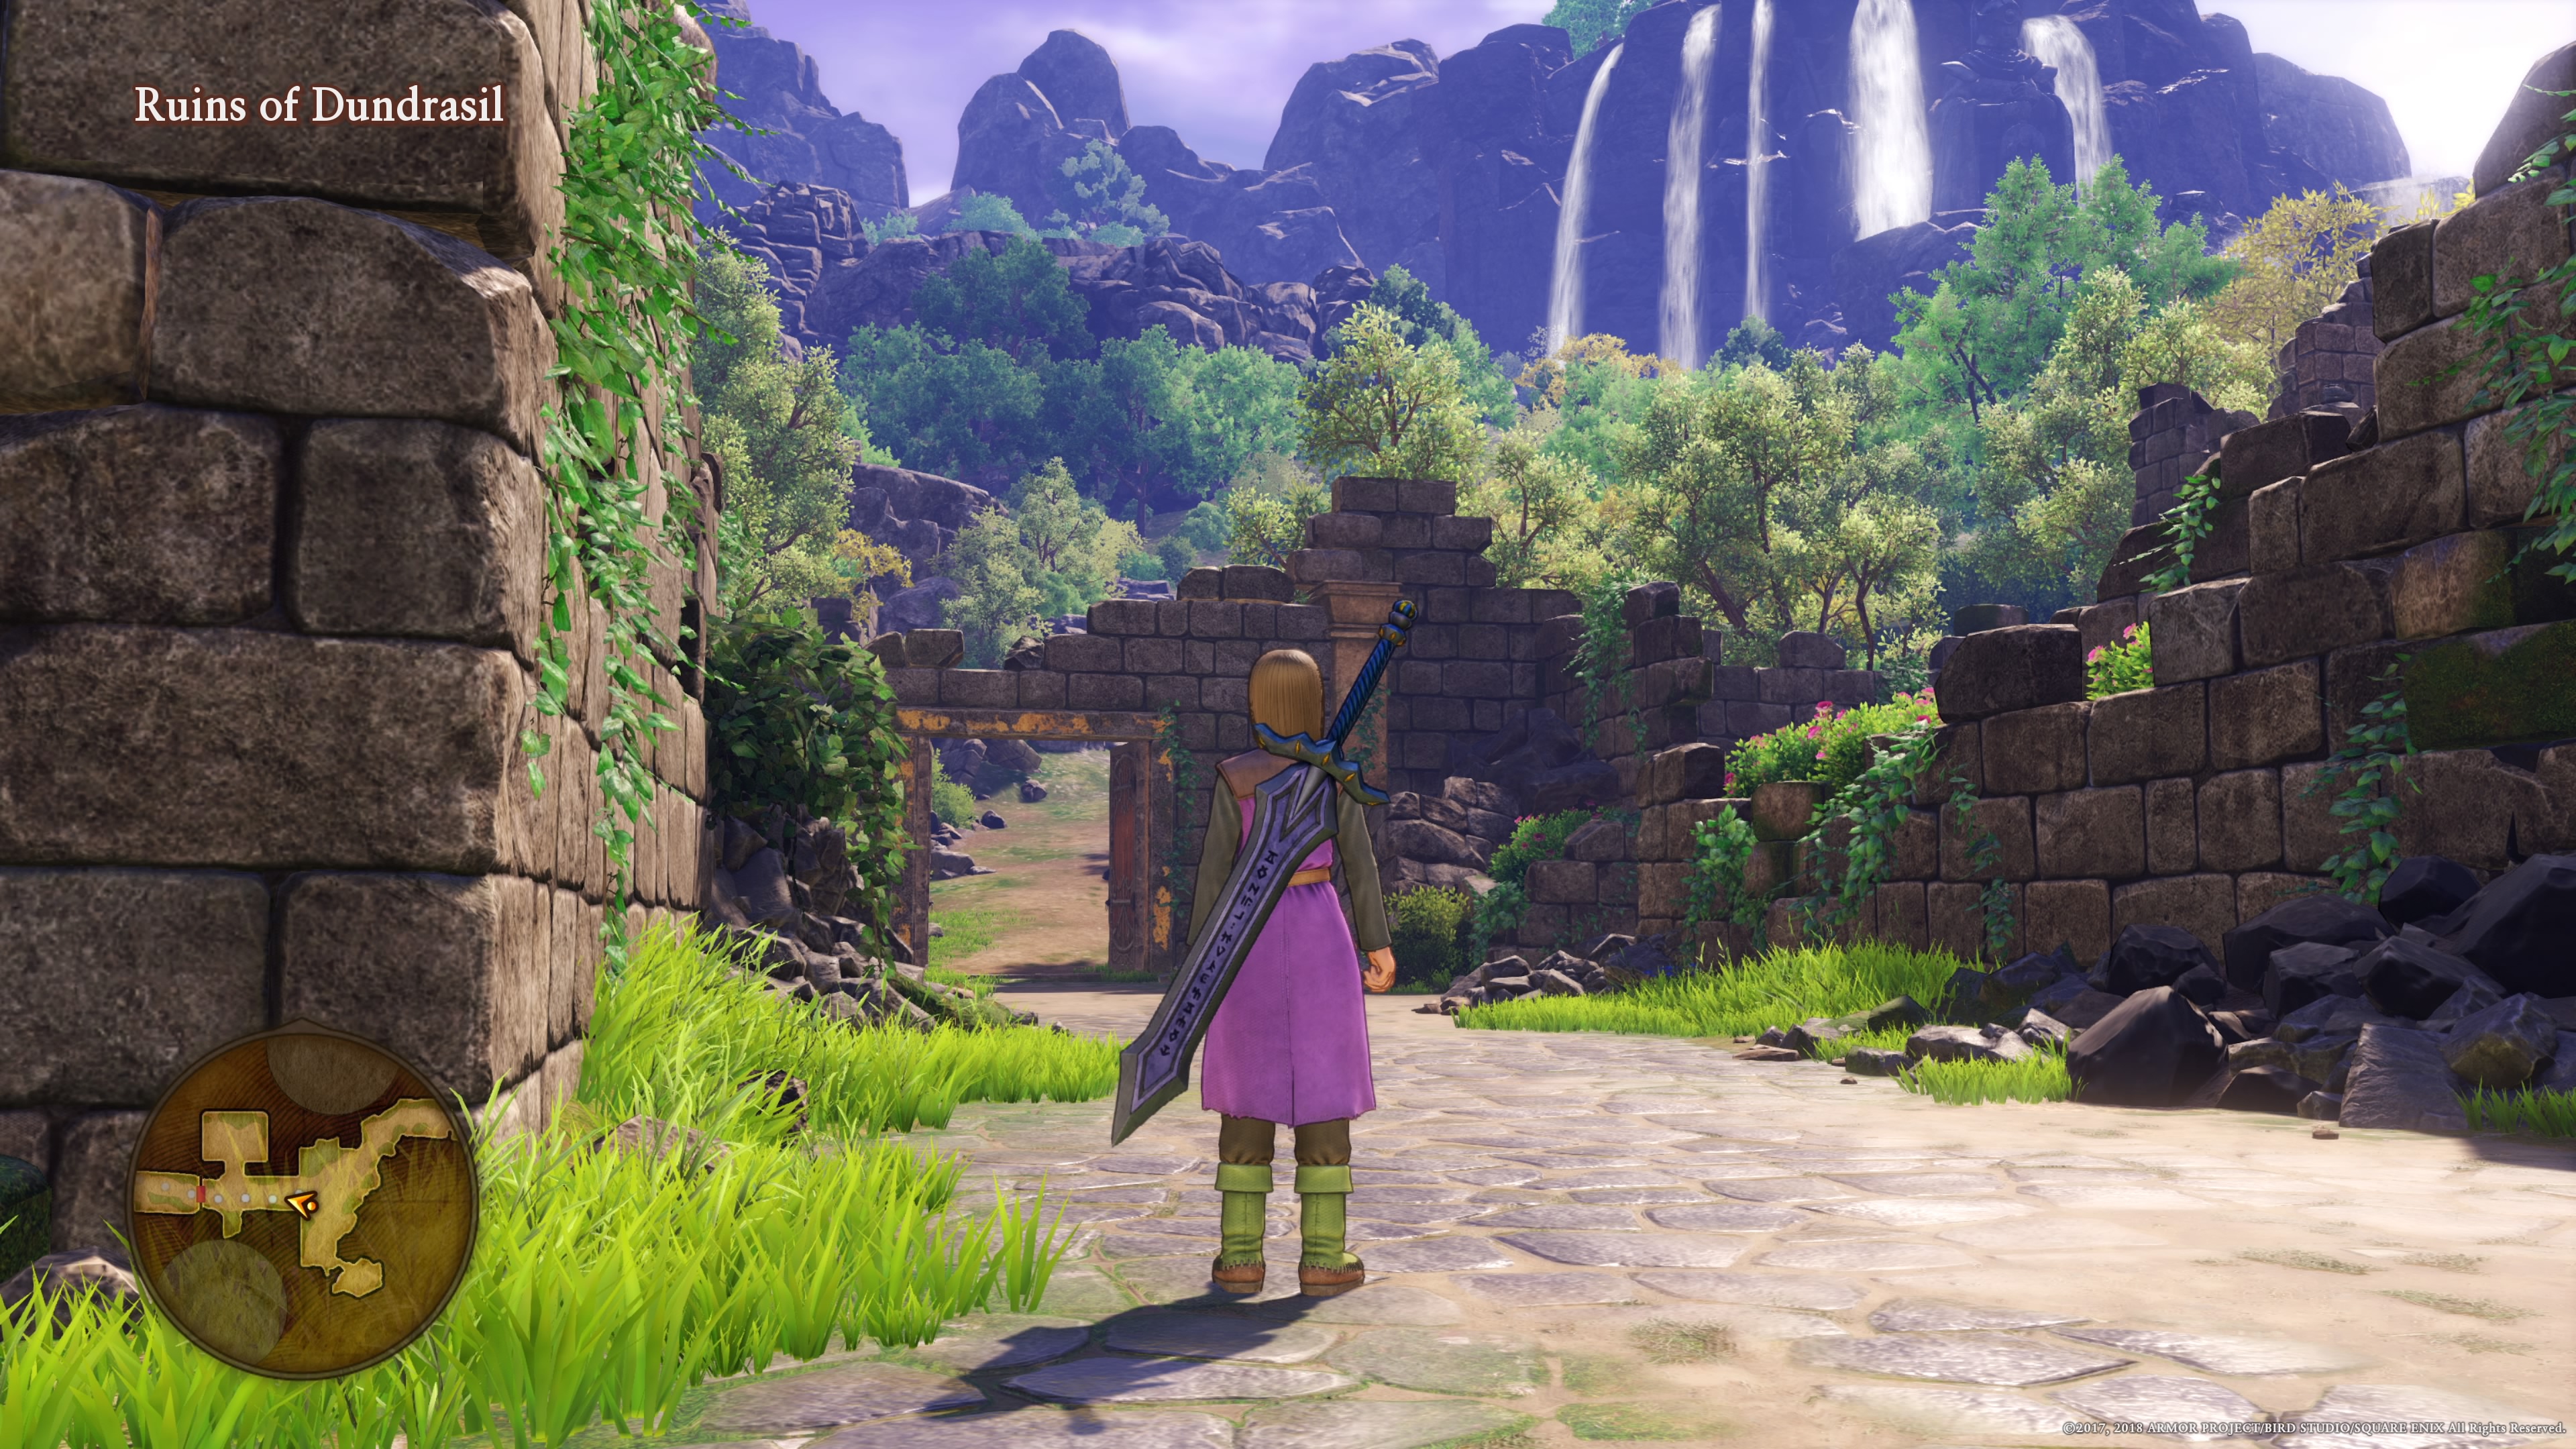 The protagonist stands before a ruined castle.